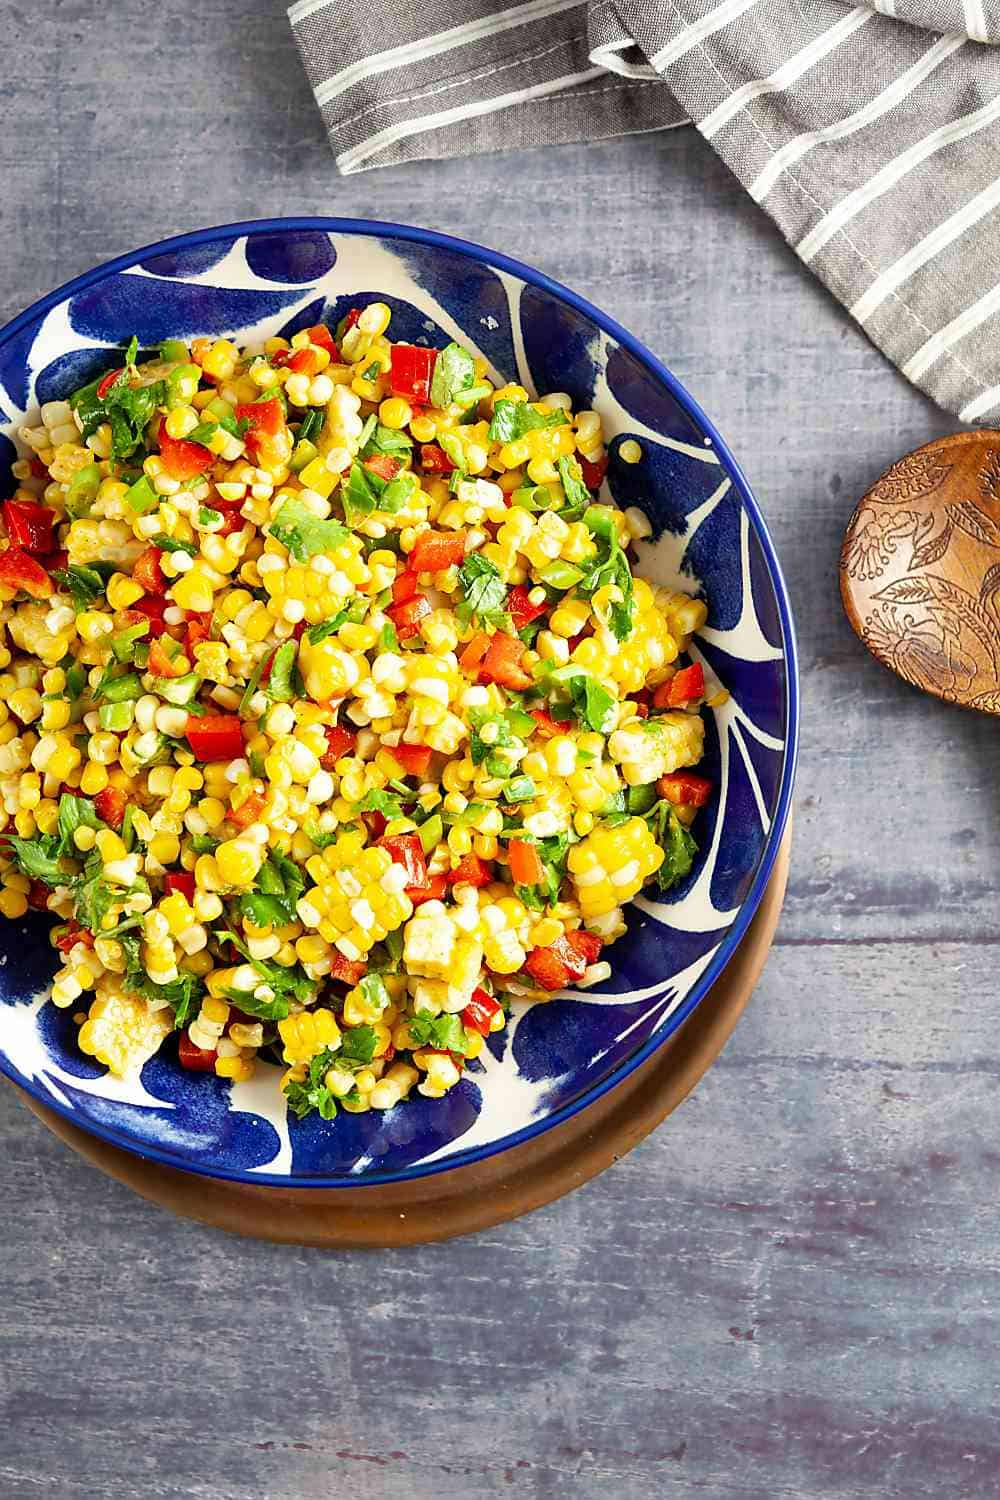 Bowl of Corn Salad with a serving spoon and a napkin